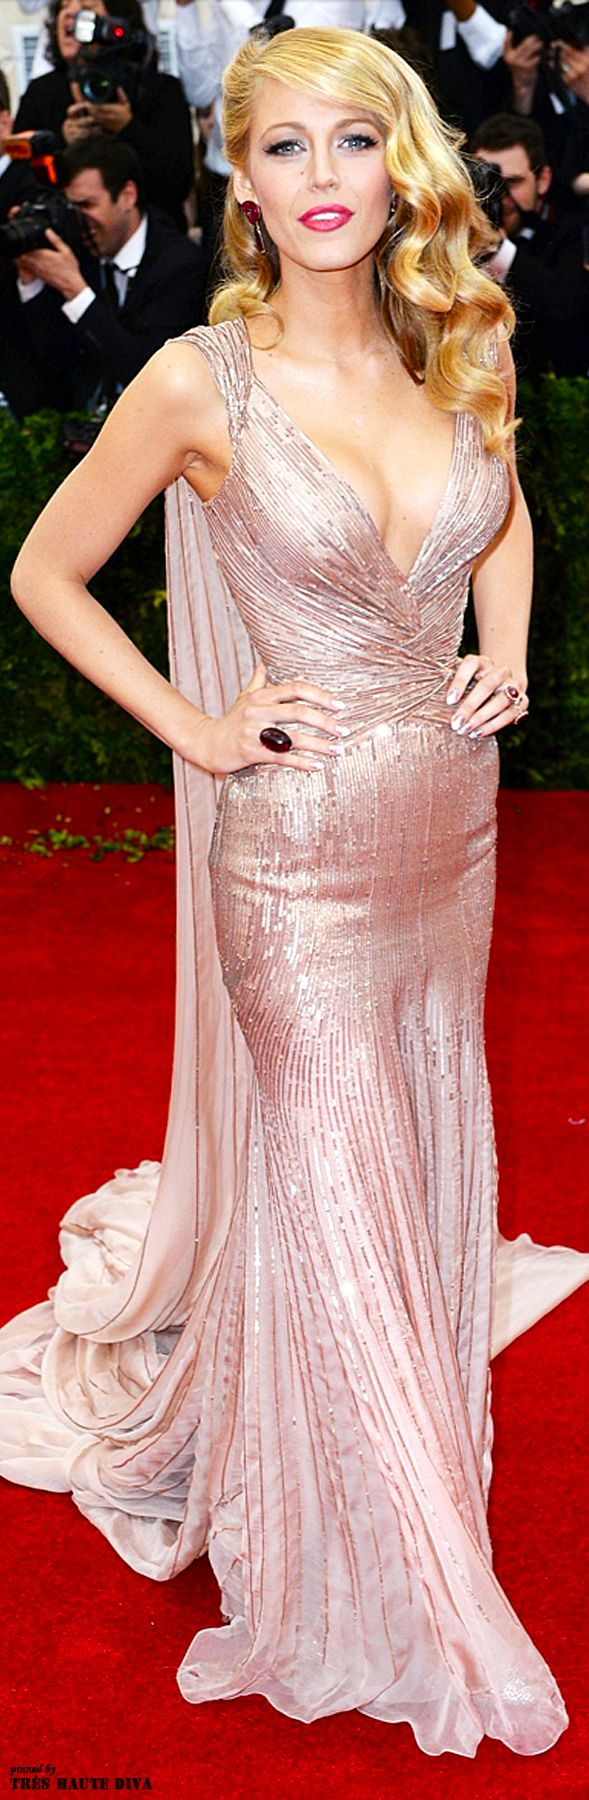 Blake Lively wore a custom-made Gucci Premiere gown to the MET Gala 2014 | The House of Beccaria~